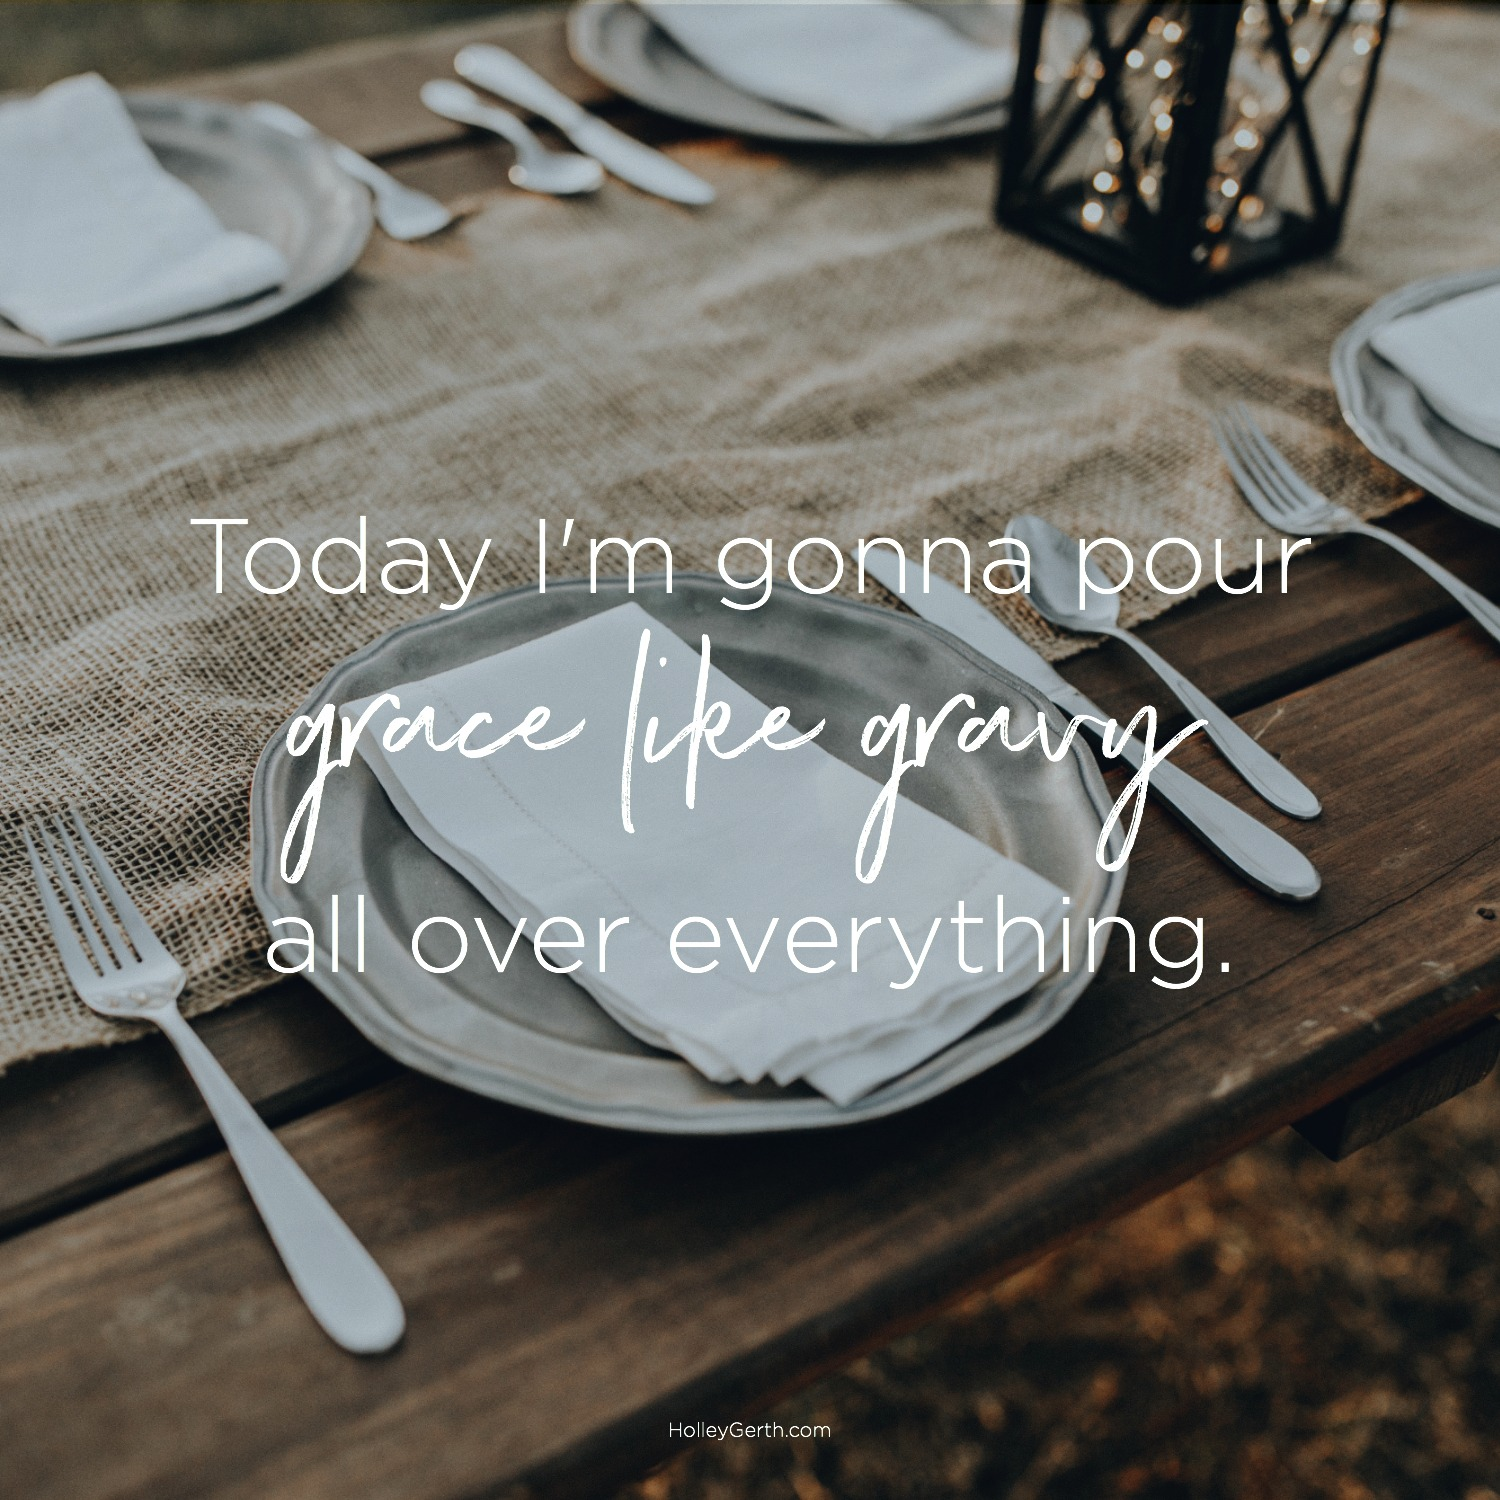 Let's Pour Grace Like Gravy Over Everything Today